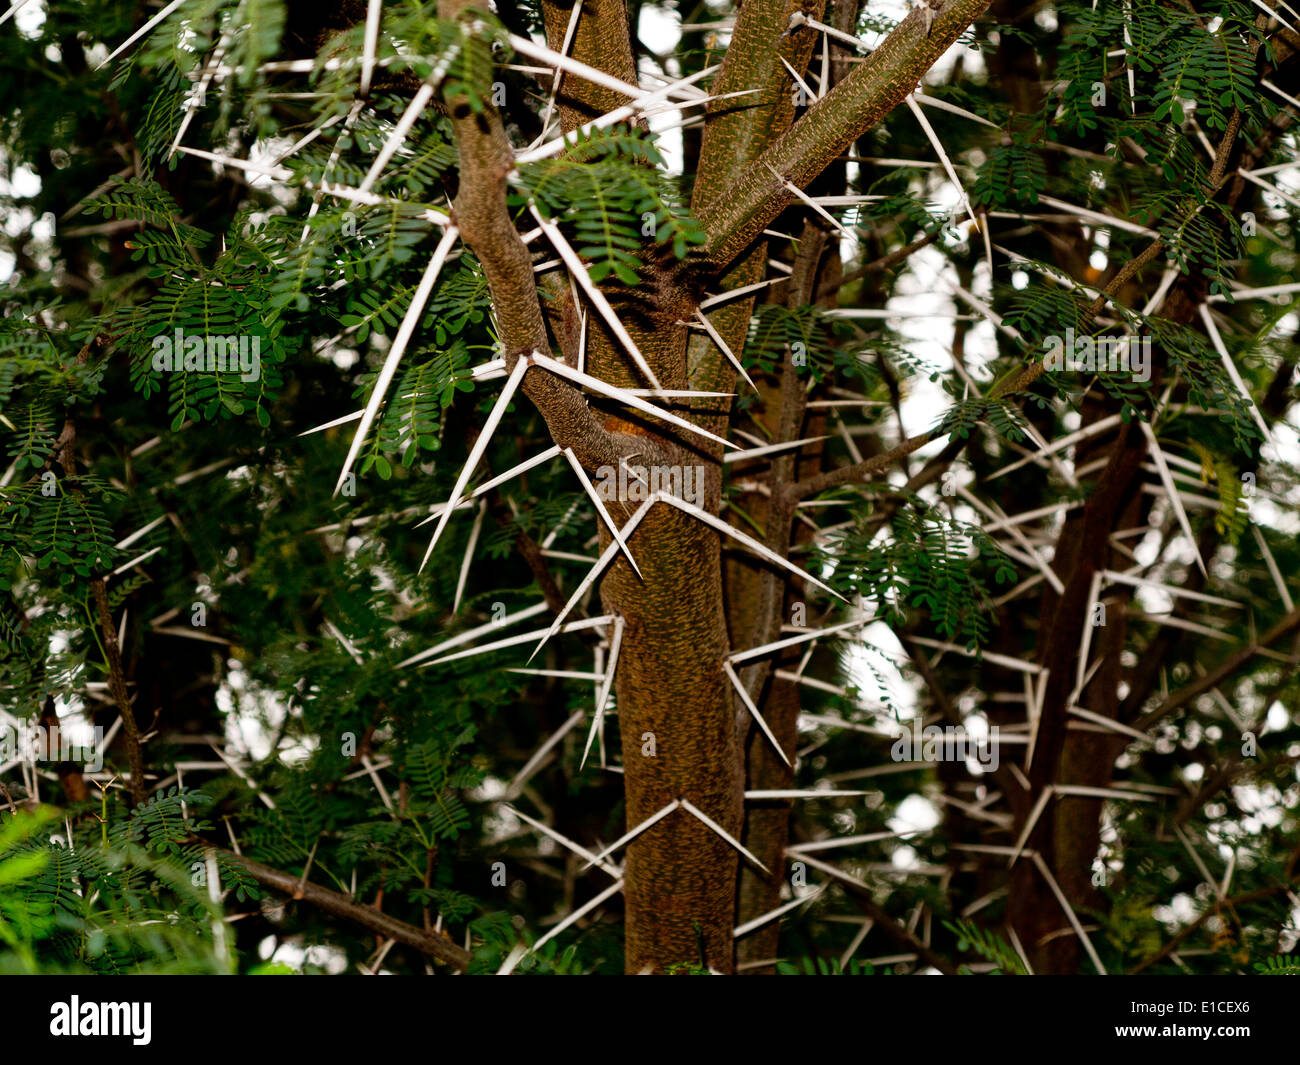 Detail of a Vachellia farnesiana bush with prominent spines - Stock Image